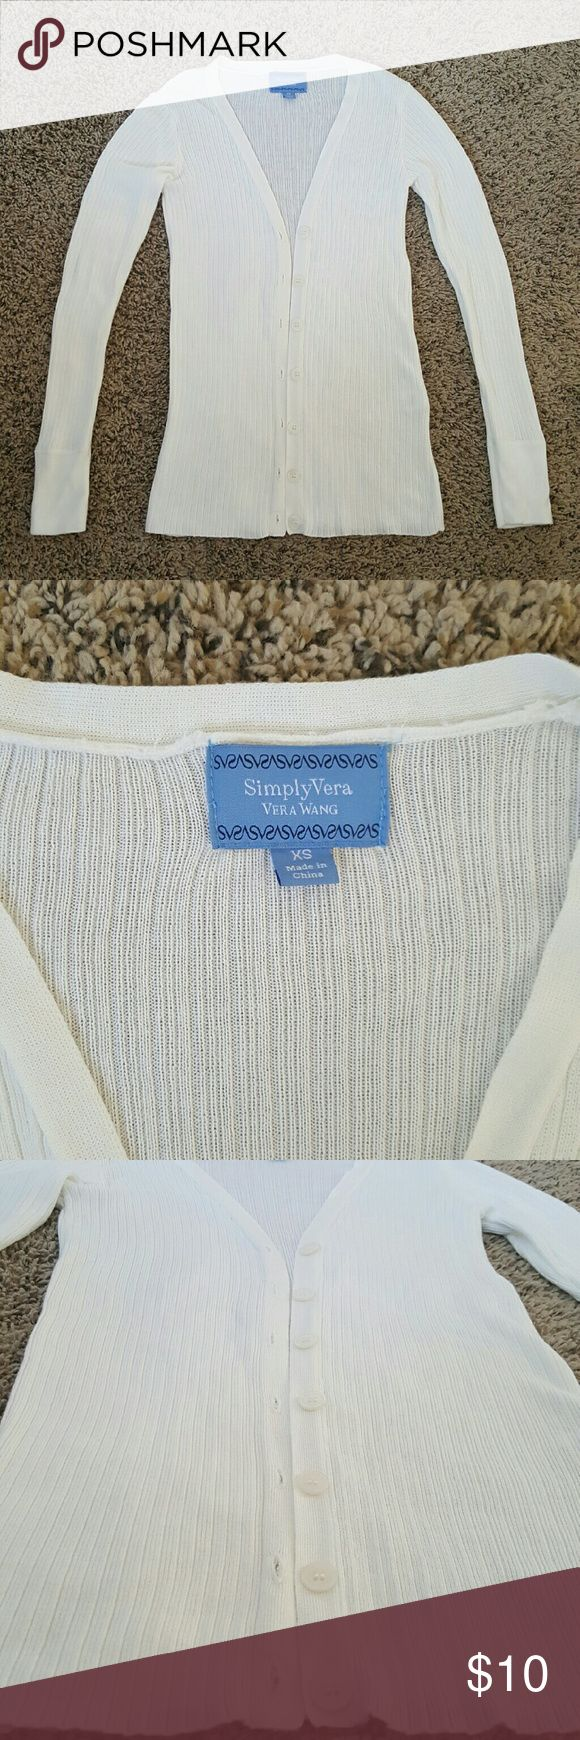 Simply Vera Vera Wang Cardigan In excellent condition!  Simply Vera Vera Wang Cardigan, slight off white, light cream, super soft, ribbed, button down, thin, sheer. Simply Vera Vera Wang Sweaters Cardigans